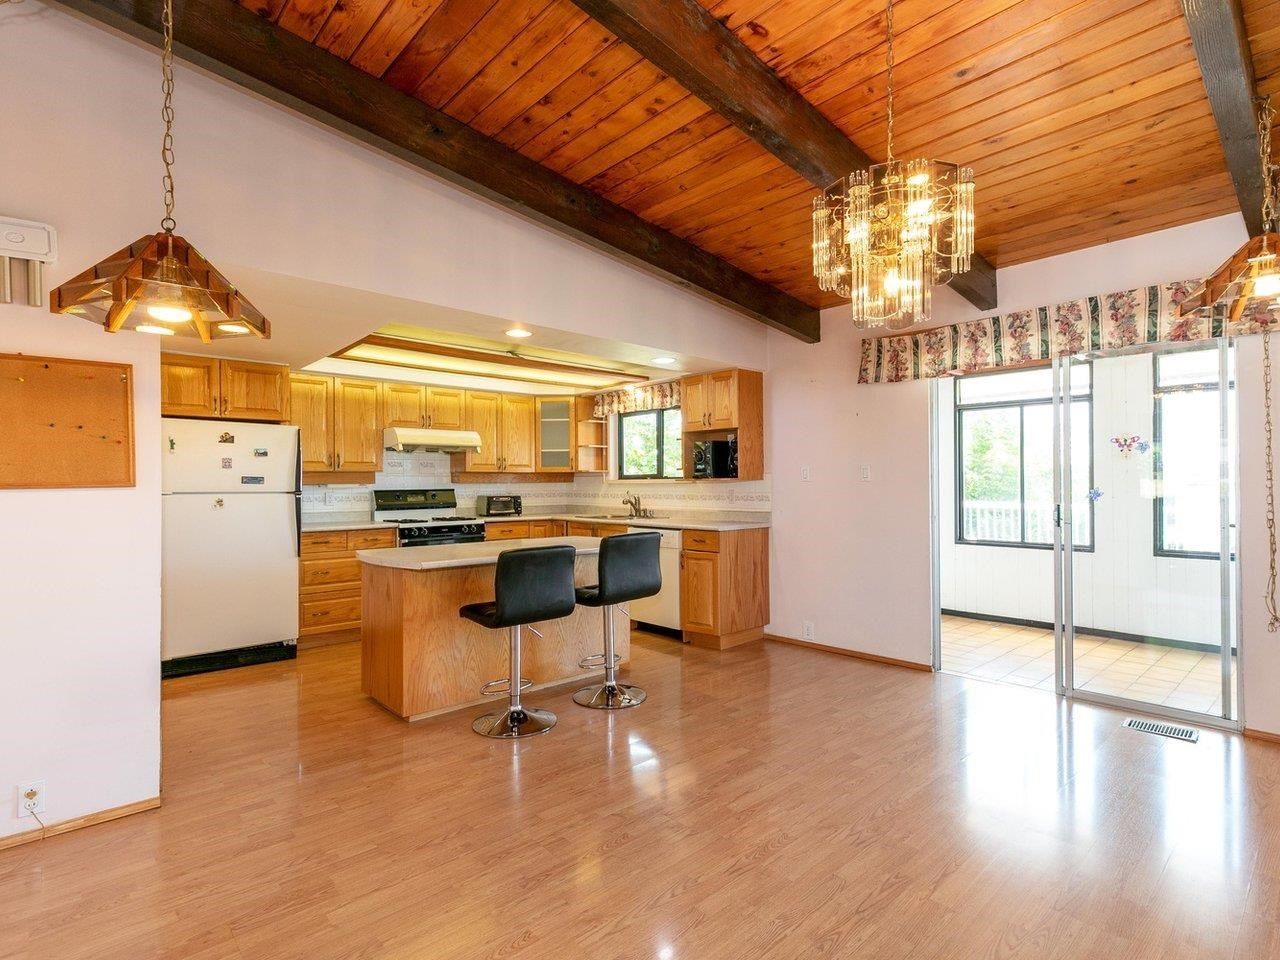 Photo 5: Photos: 6860 HYCREST Drive in Burnaby: Montecito House for sale (Burnaby North)  : MLS®# R2594917